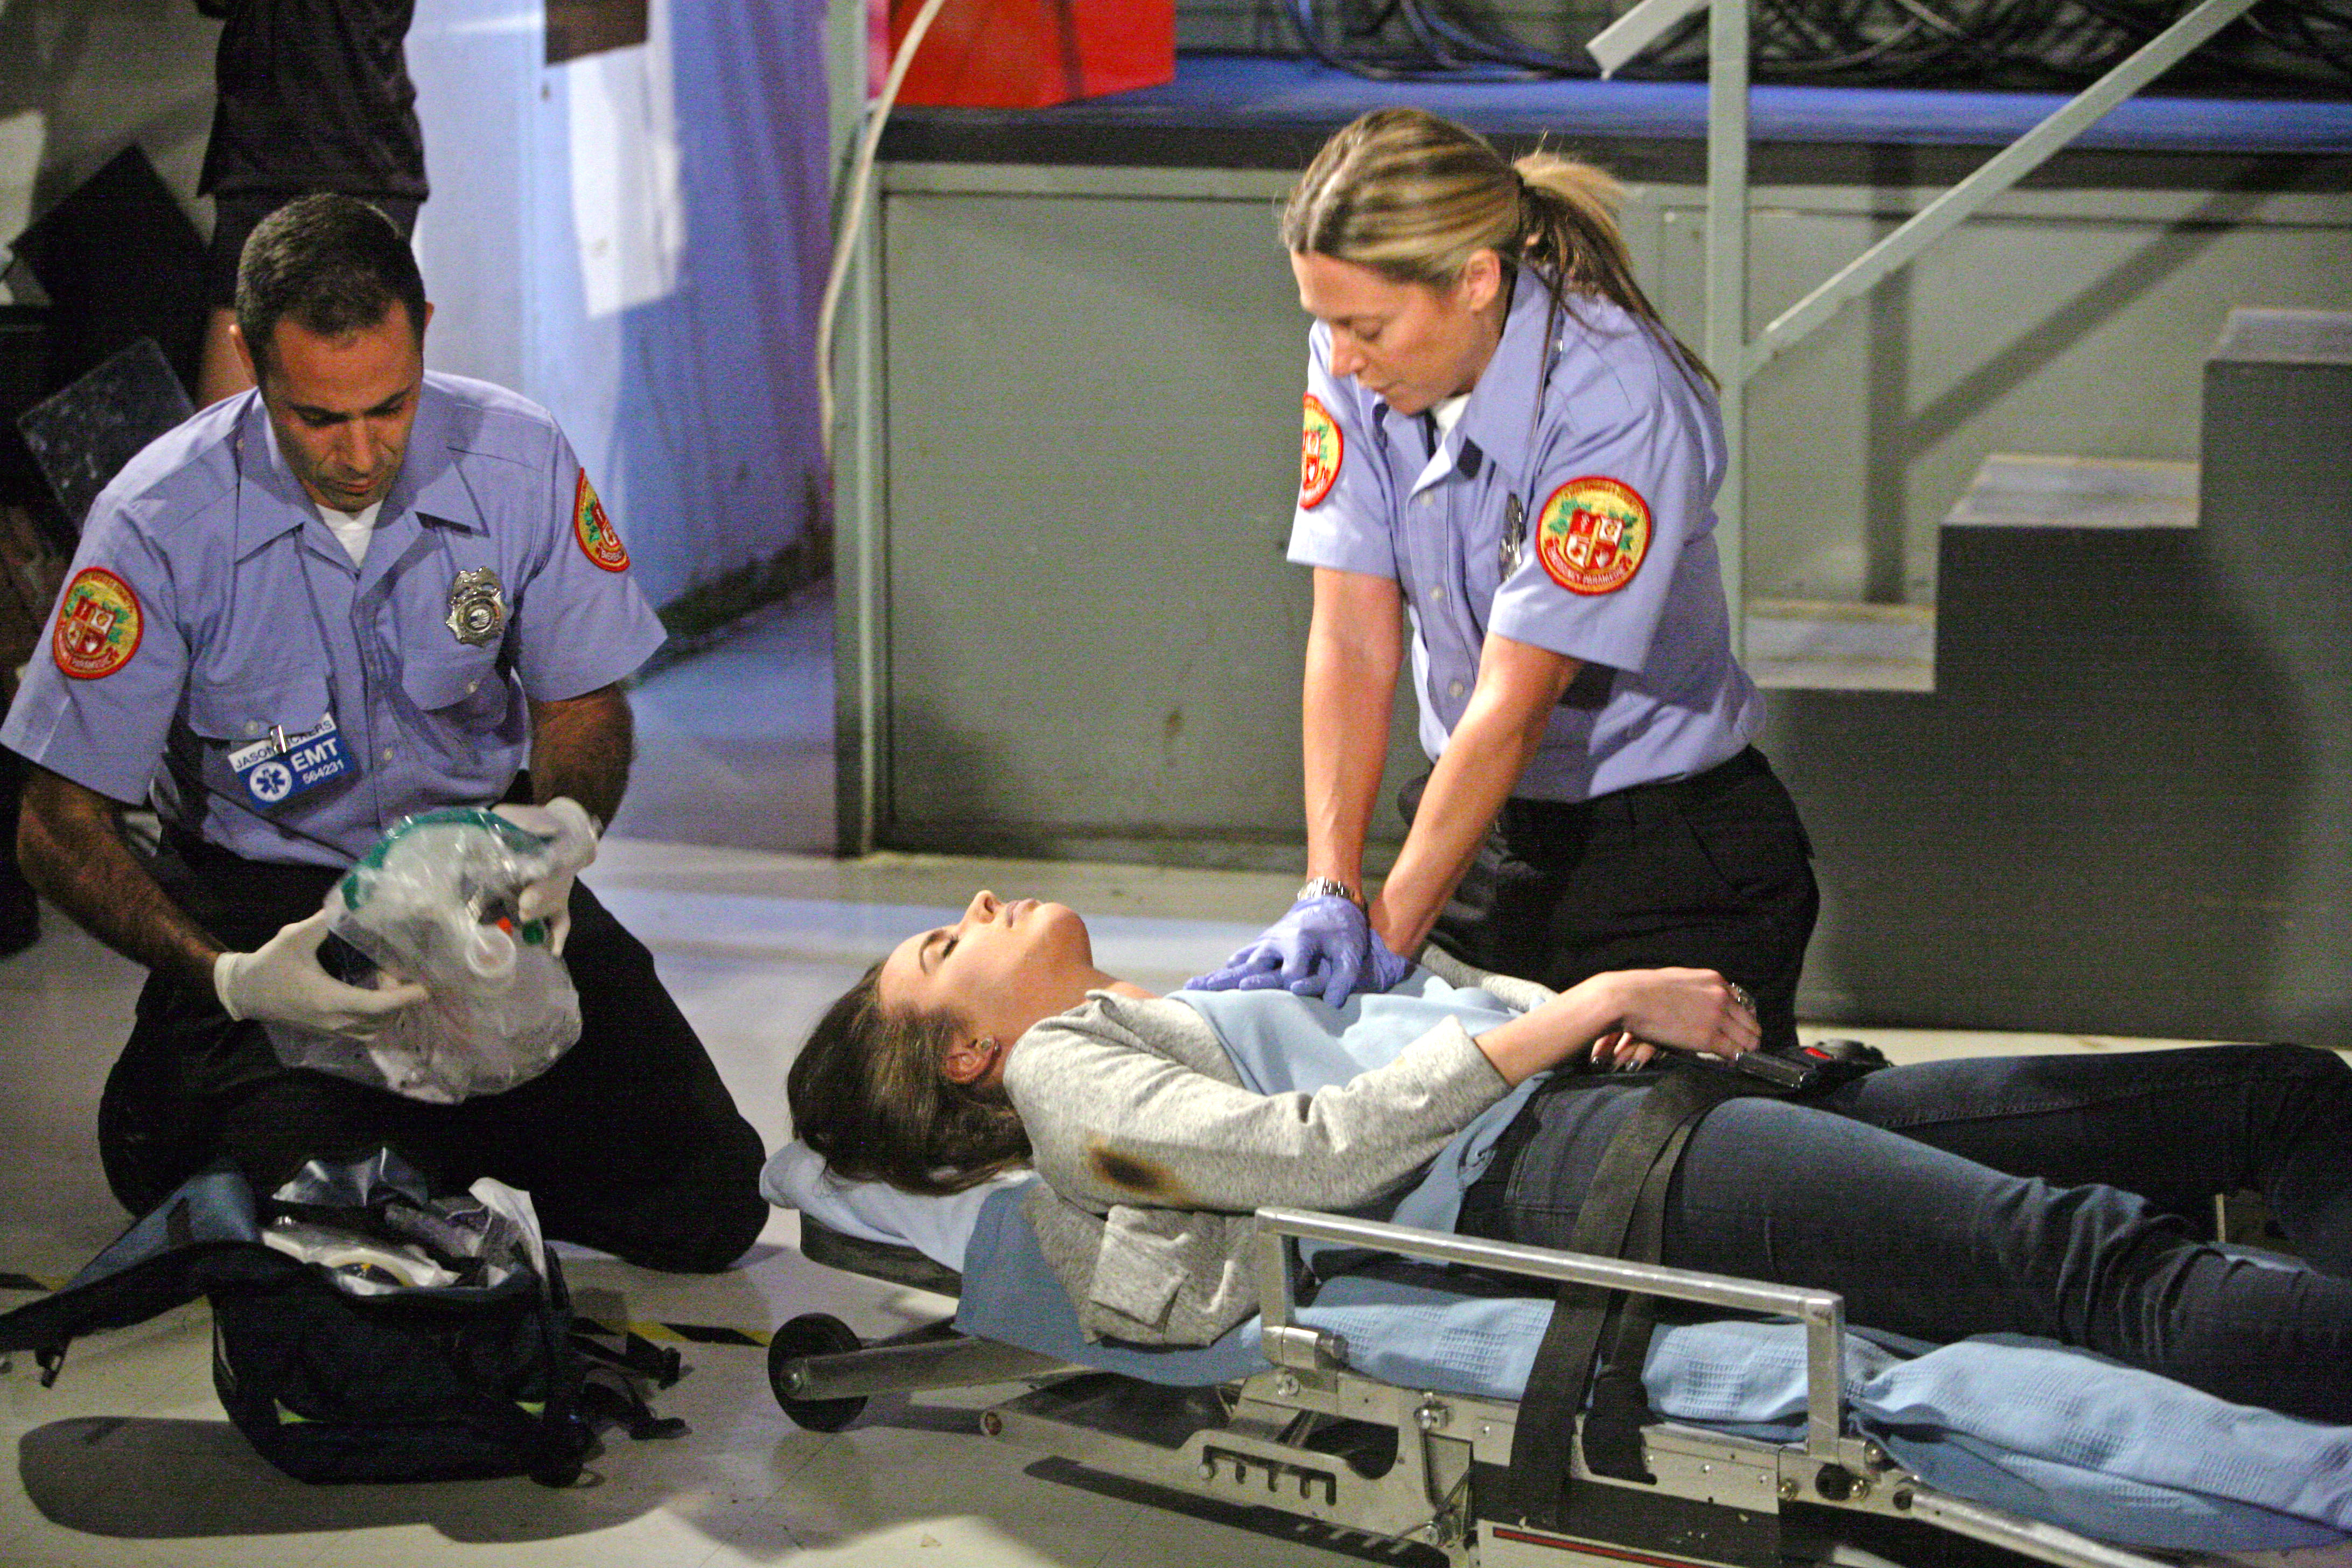 Ivy gets taken away to the hospital.